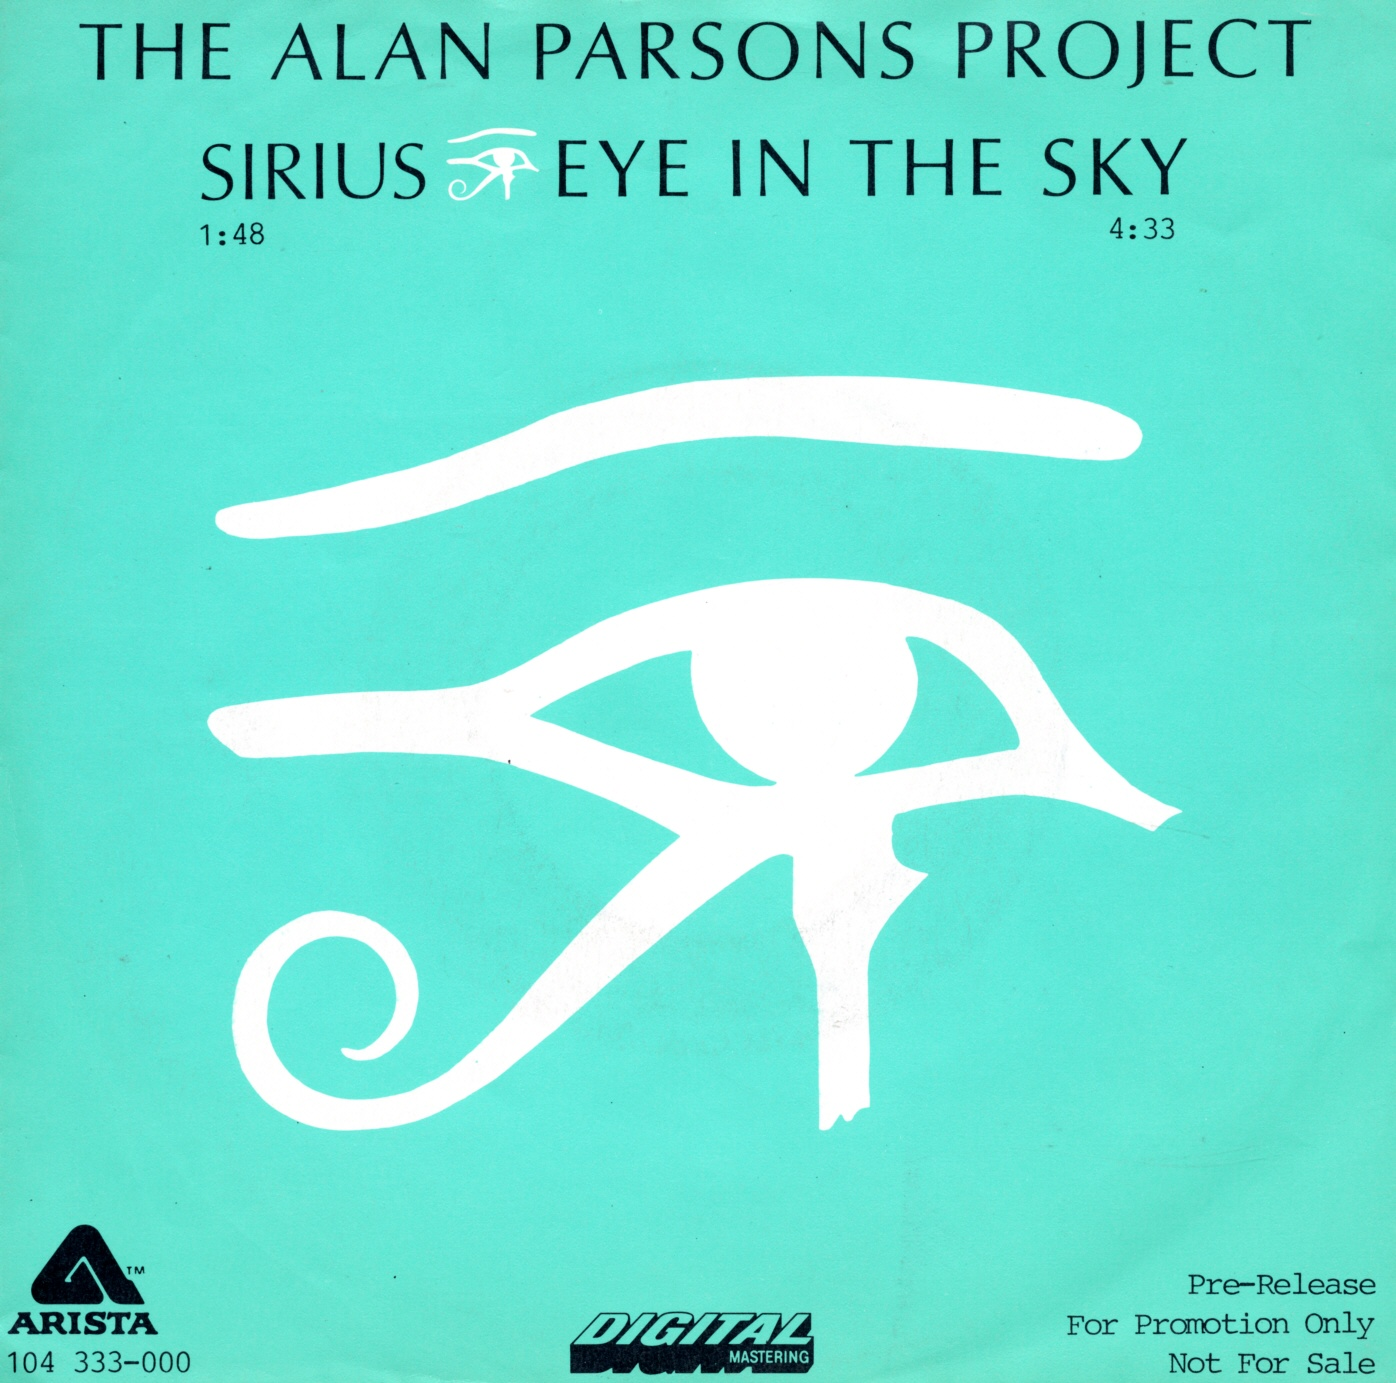 Cover: Eye in the sky, Alan Parsons